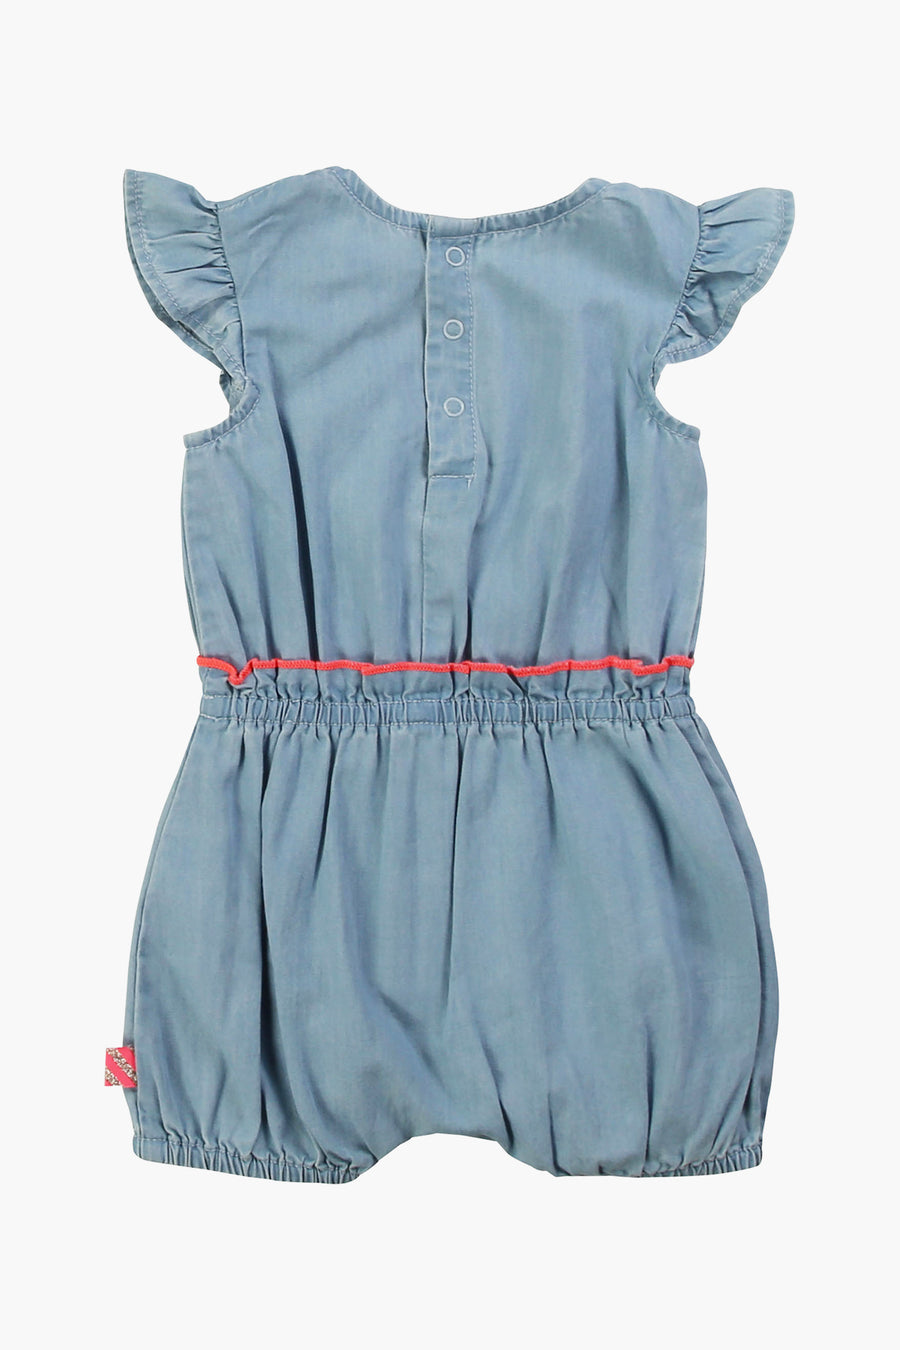 Billieblush Denim Baby Romper